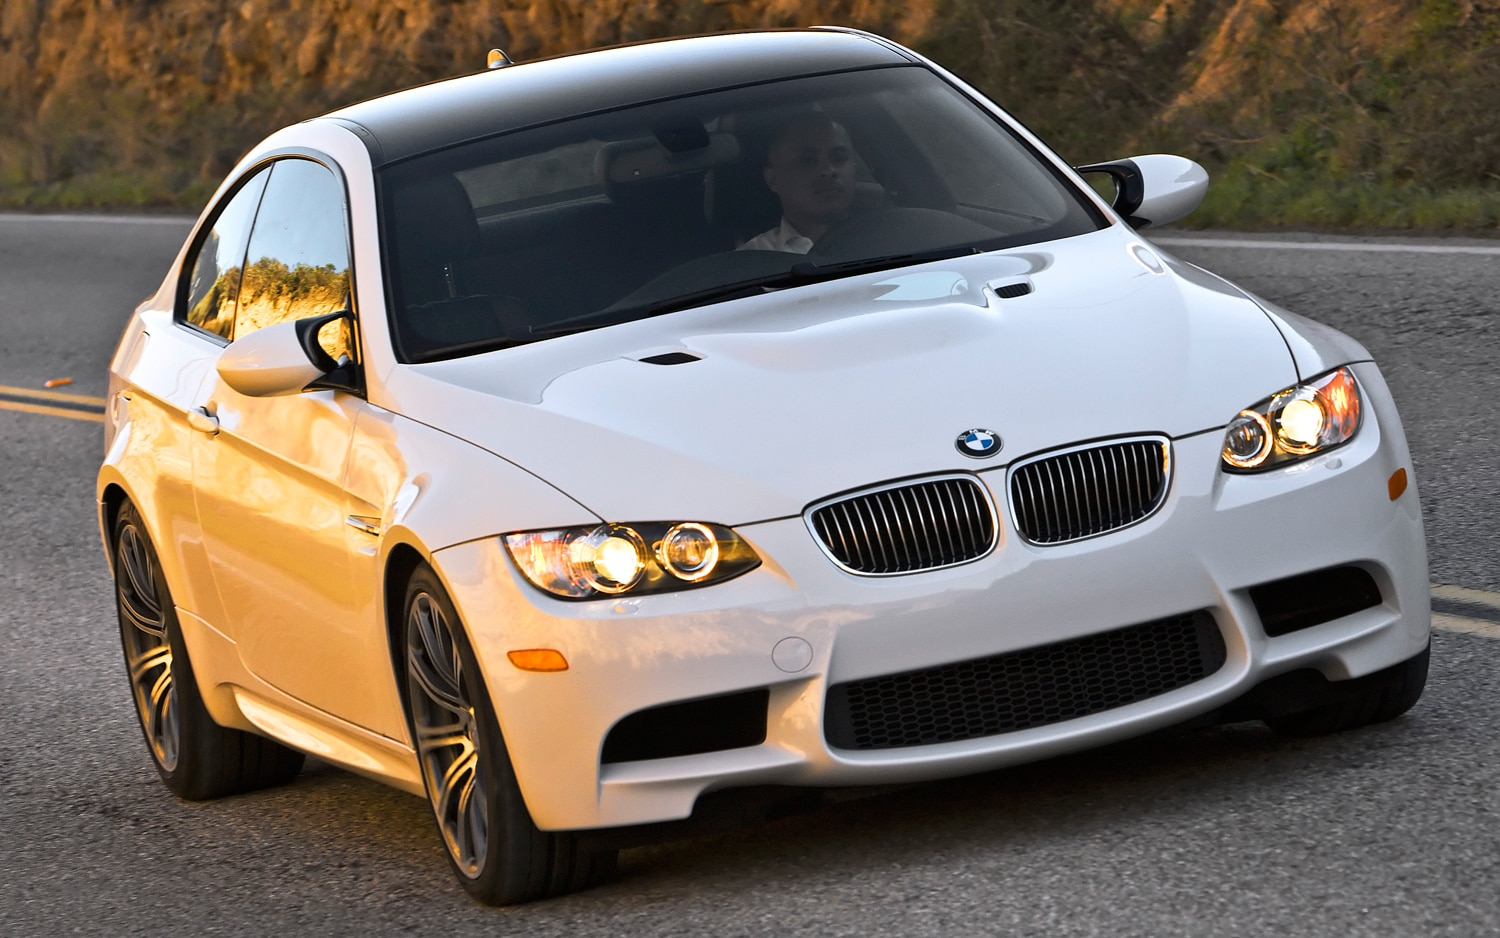 Coupe Series 2012 bmw m3 convertible The $64,000 Question